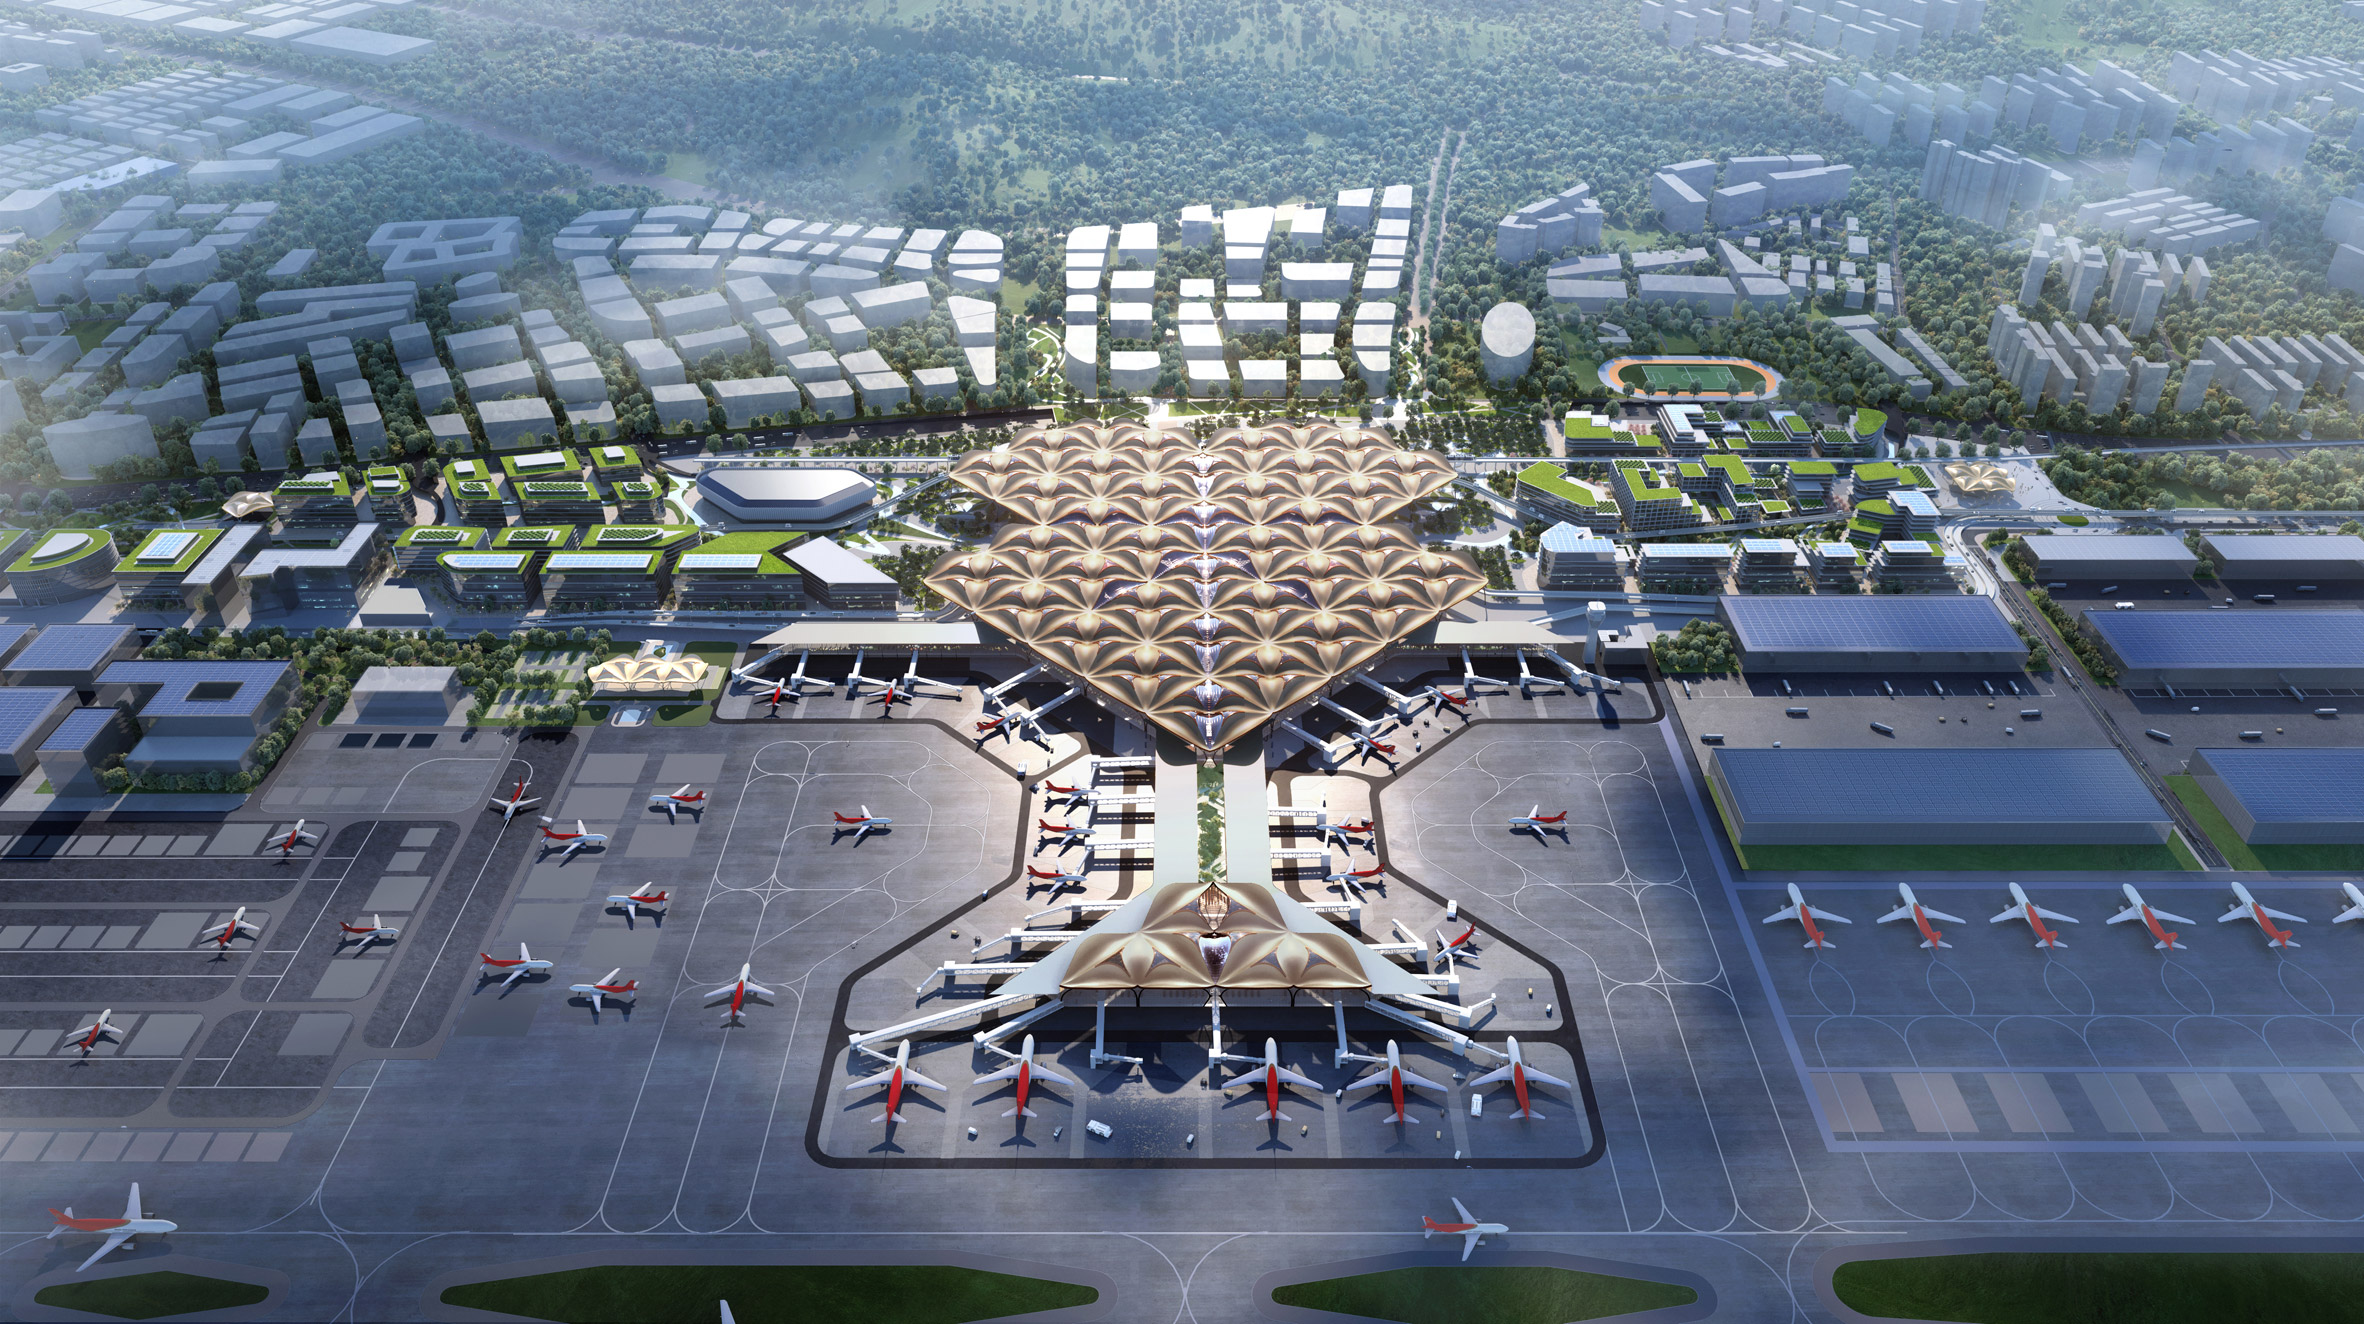 A visual of a new transport hub at Shenzhen Bao'an Airport